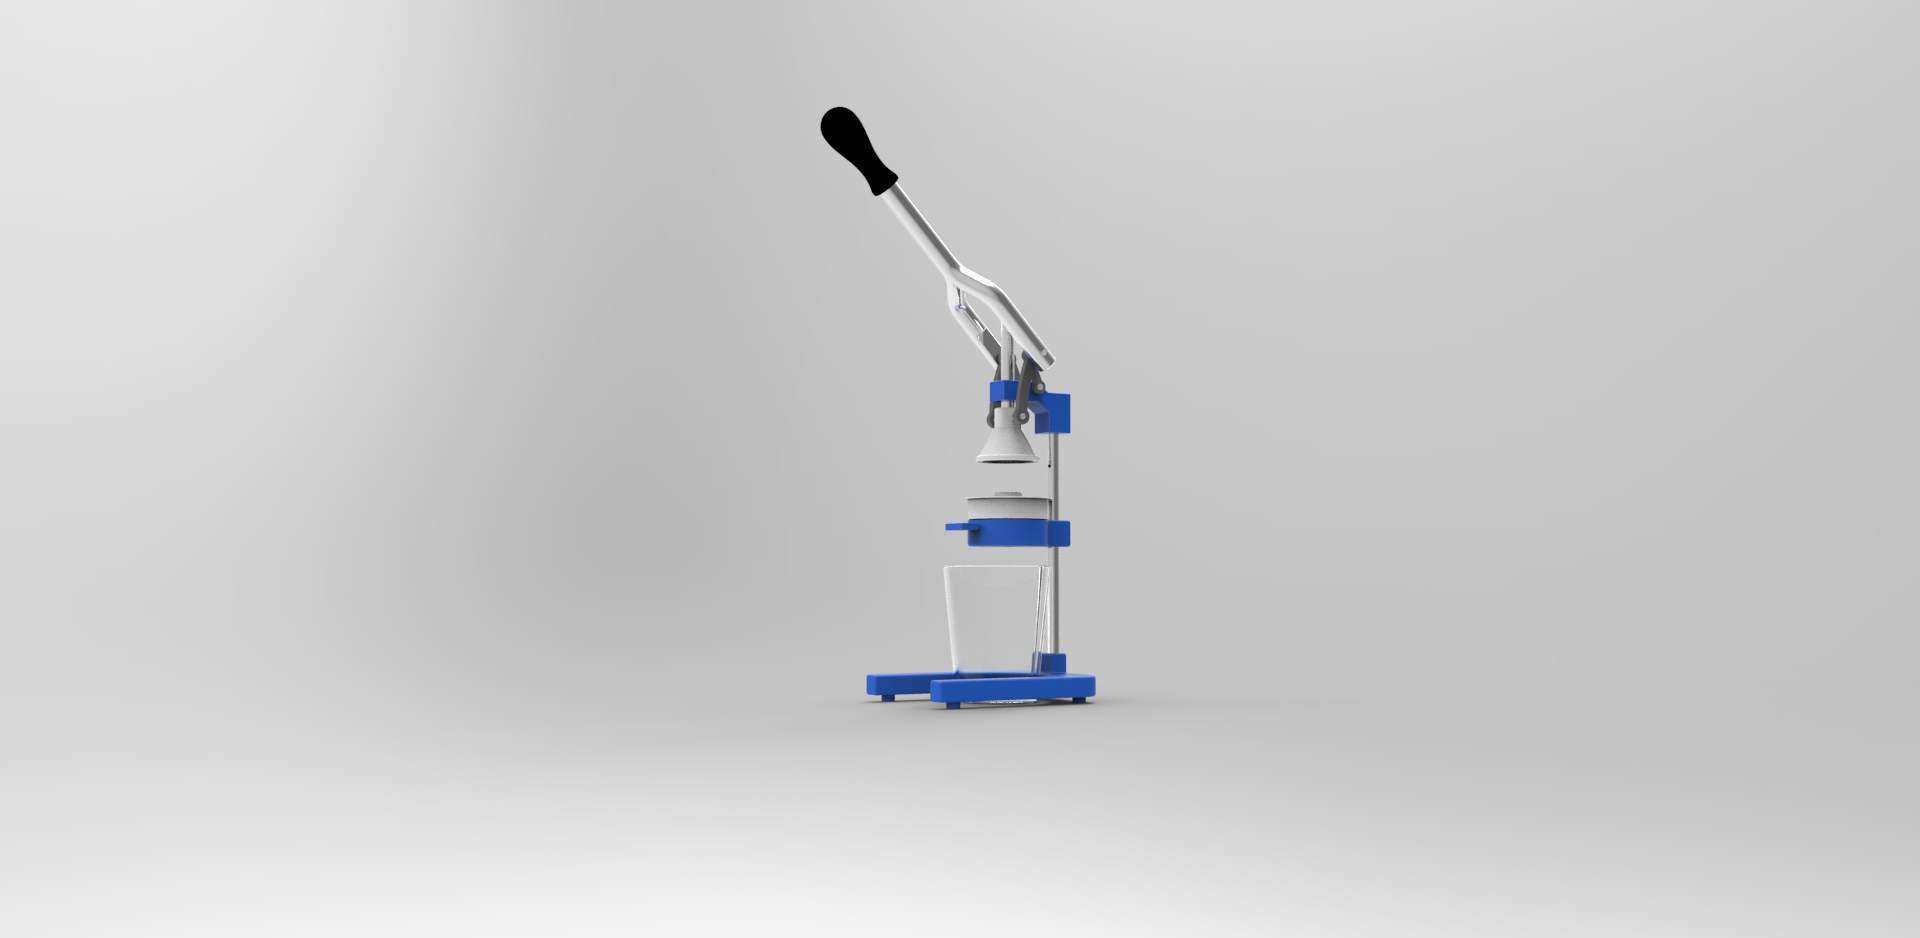 Juicer Photo-Realistic Rendering